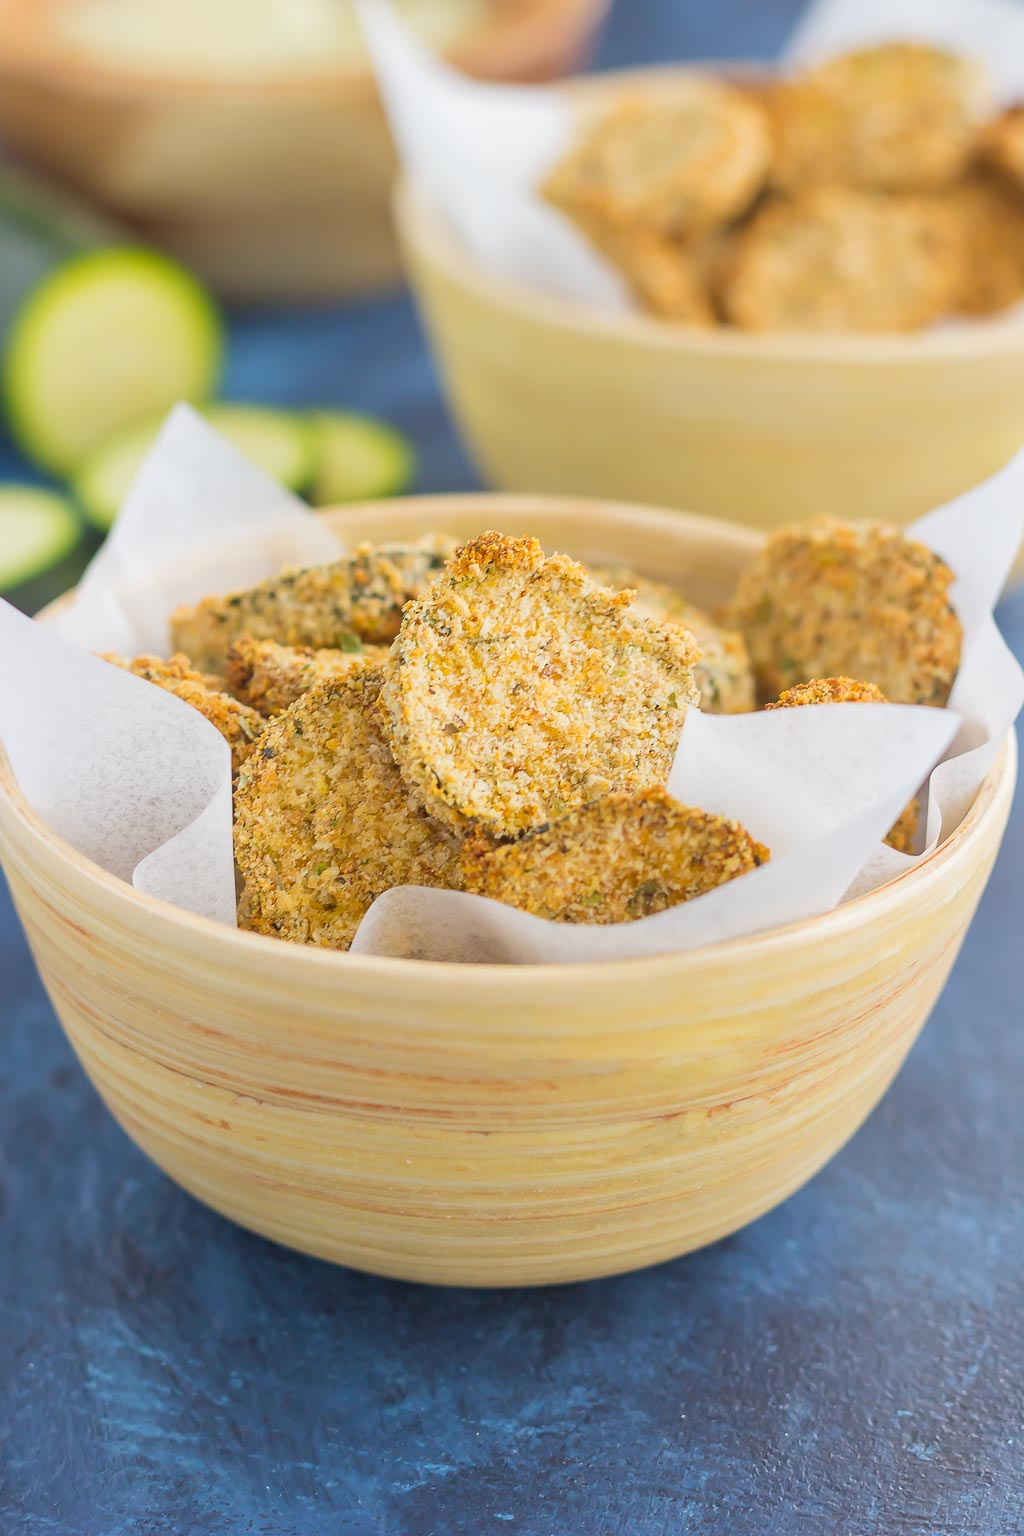 If you're looking for a creative twist on a classic vegetable, try these Zucchini Chips with Ranch Mayo Dip.Loaded with spices, these chips make a healthy snack, appetizer, or side dish! #zucchini #zucchinichips #crispyzucchini #zucchiniappetizer #zucchinisnack #appetizer #snack #summerappetizer